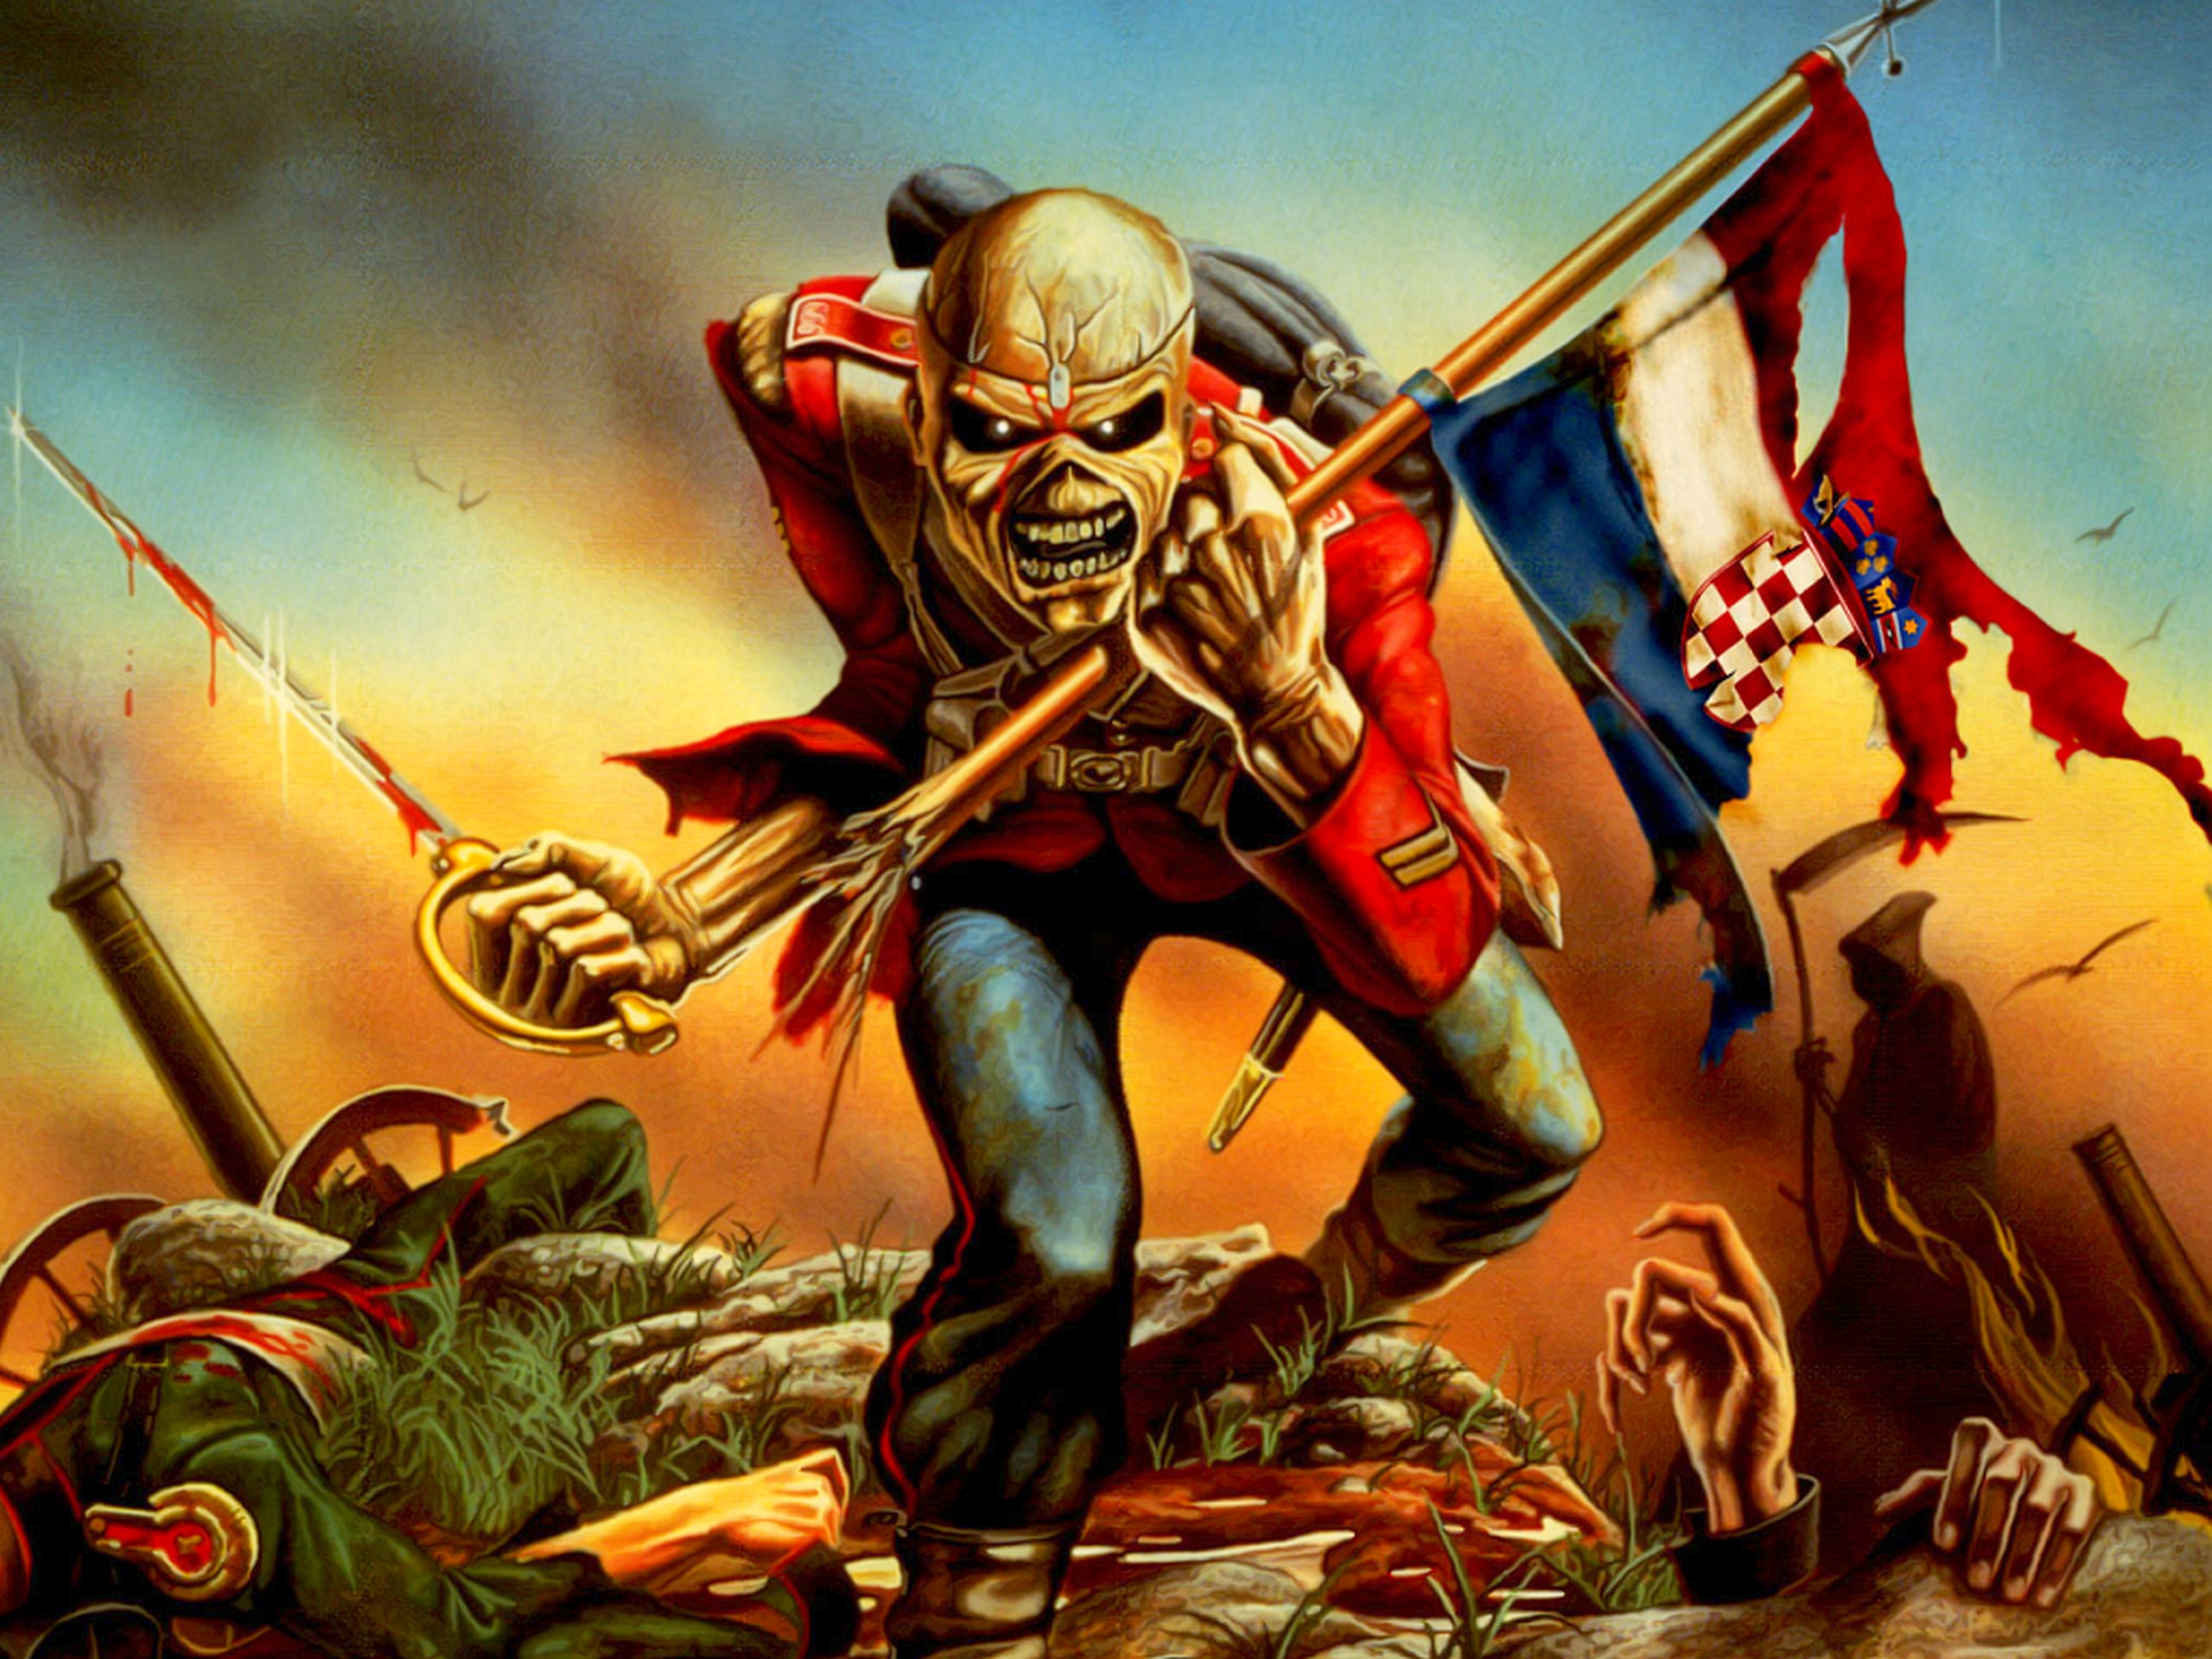 iron maiden full hd wallpaper and background image | 2560x1920 | id